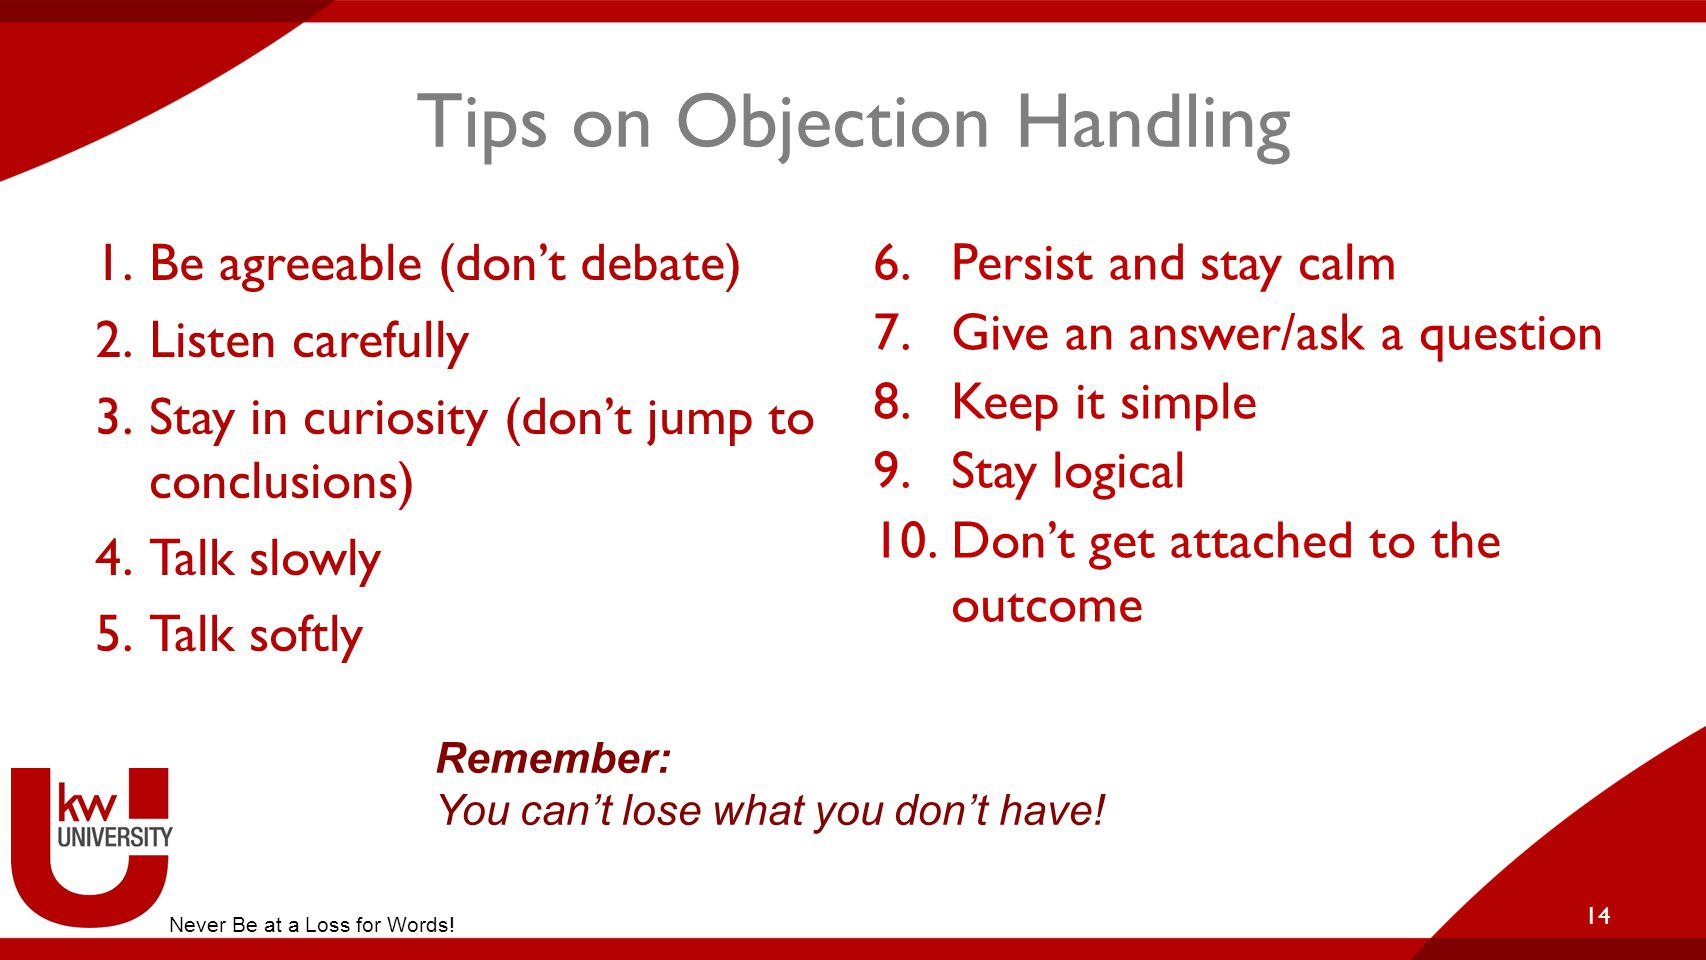 Tips on Objection Handling